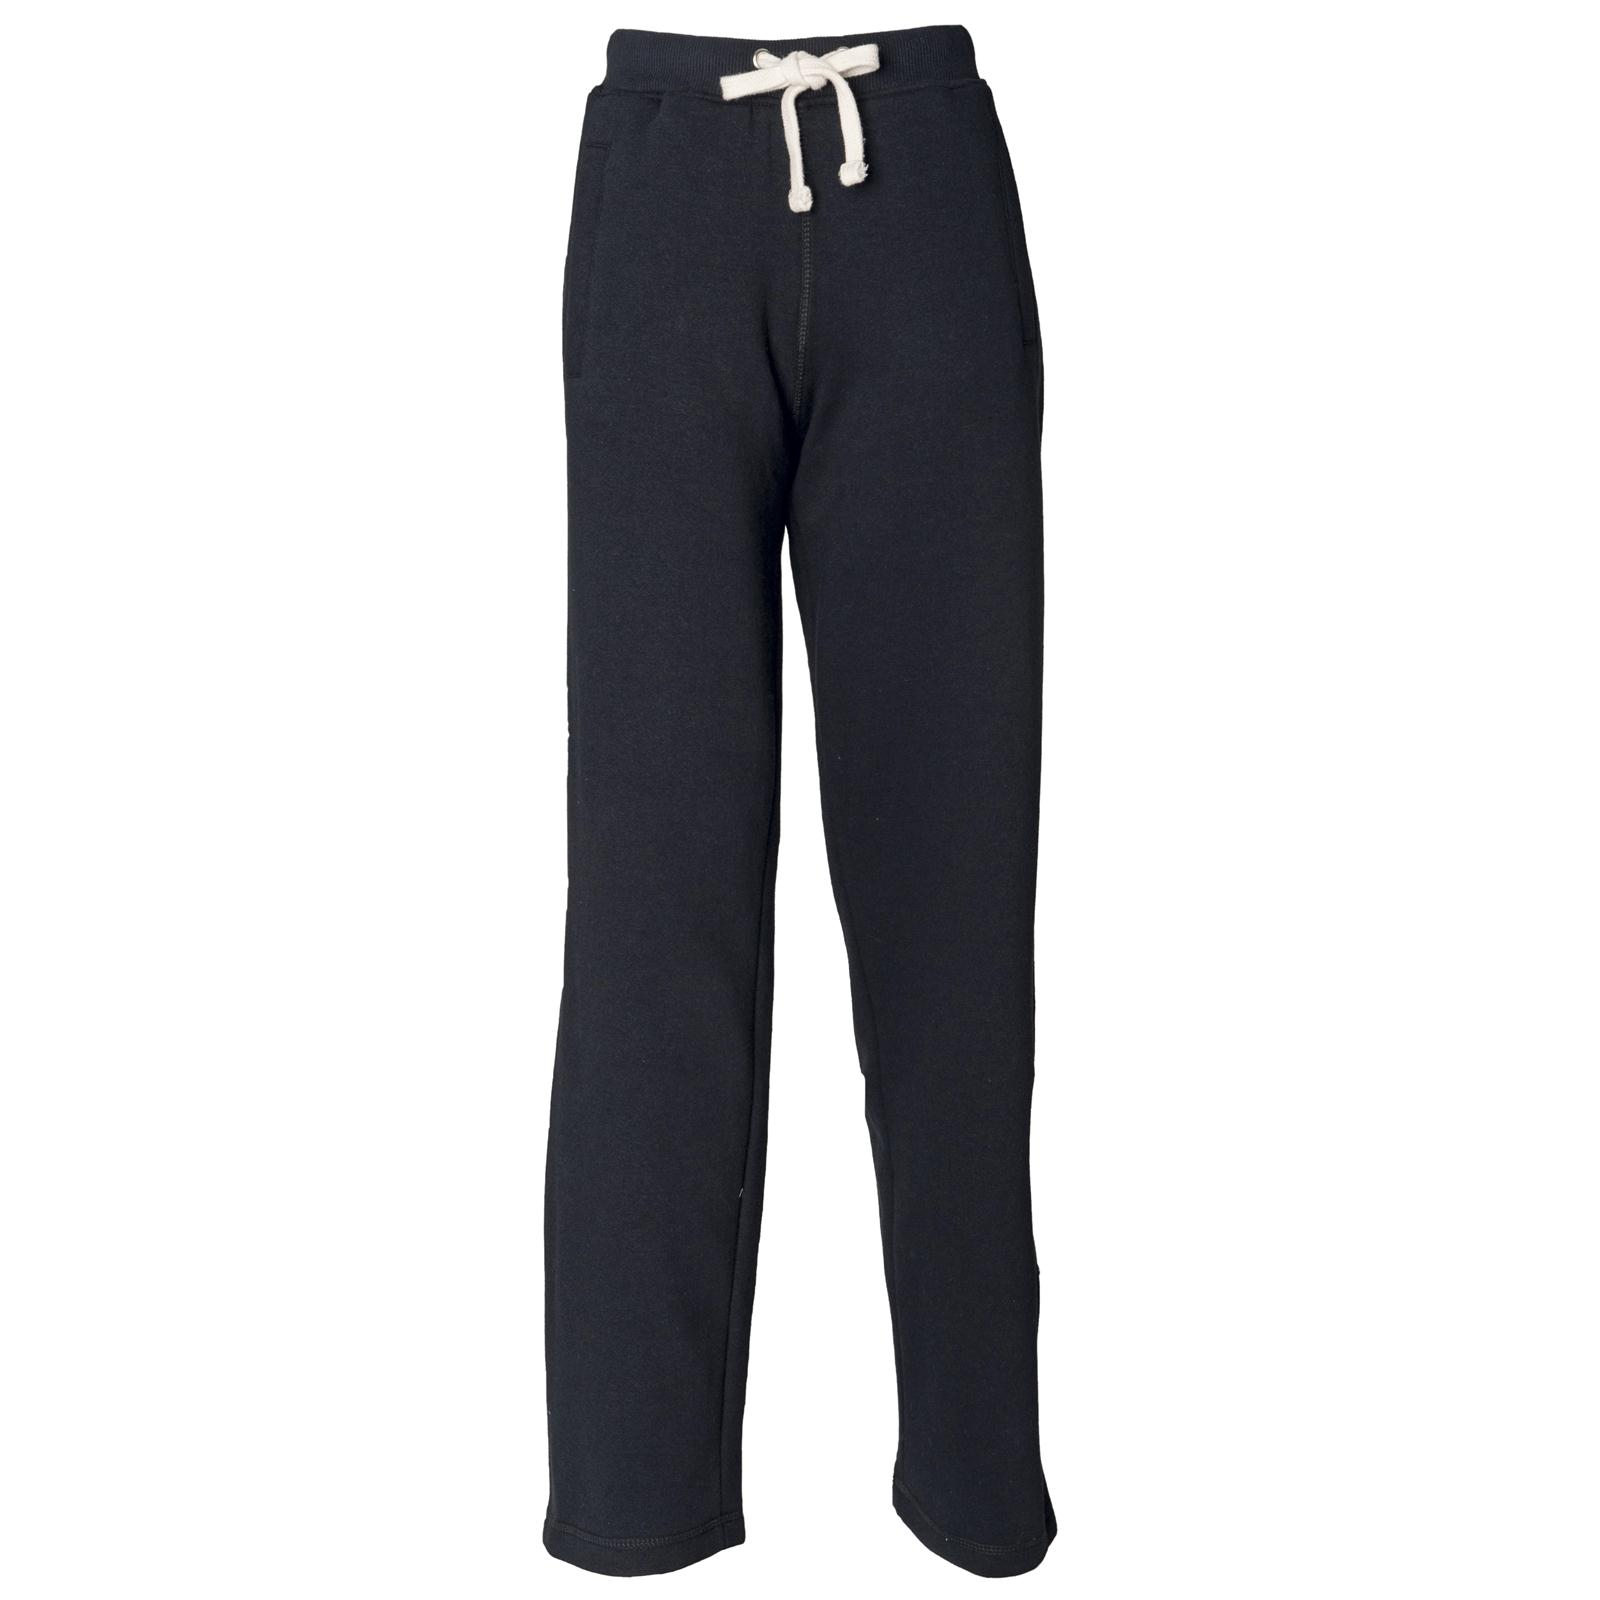 New FRONT ROW Womens Ladies Jogging Track Lounge Pants Bottoms in 3 Colours S-XL